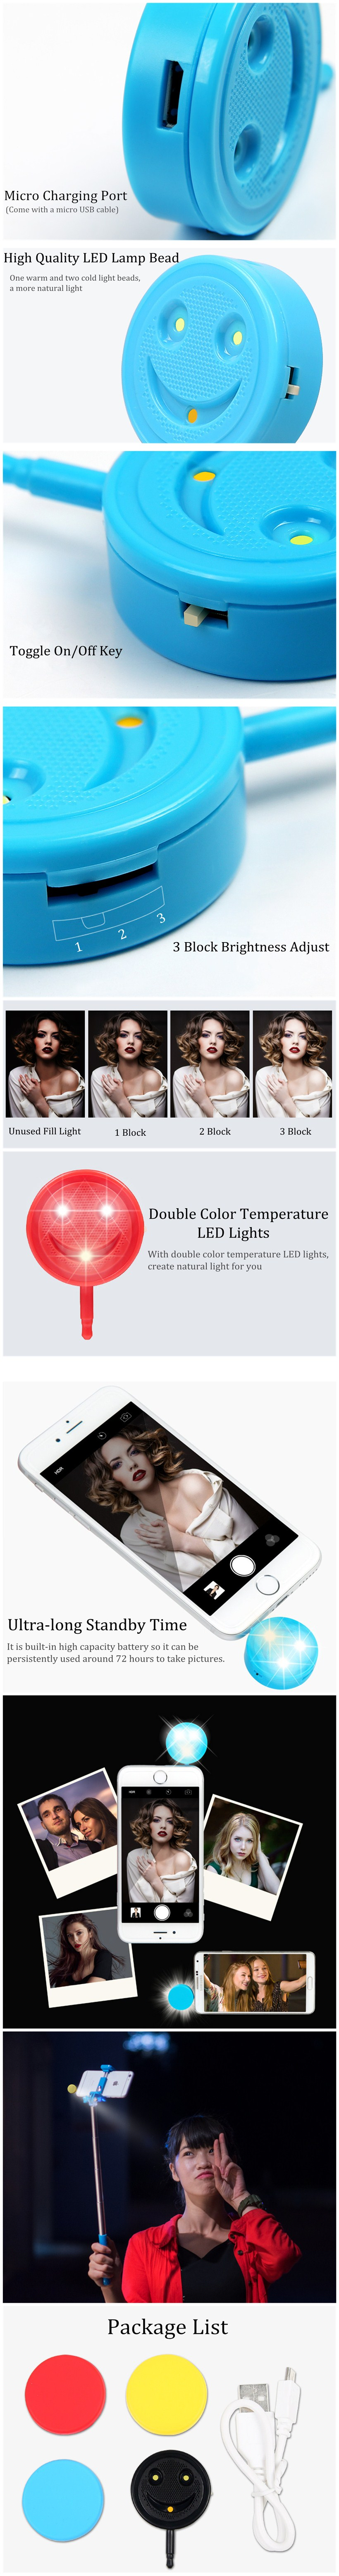 Mini Portable 3.5mm 4-in-1 Cold-Warm 3 LED Fill Light Lamp Smiling Face Flash For iPhone Samsung